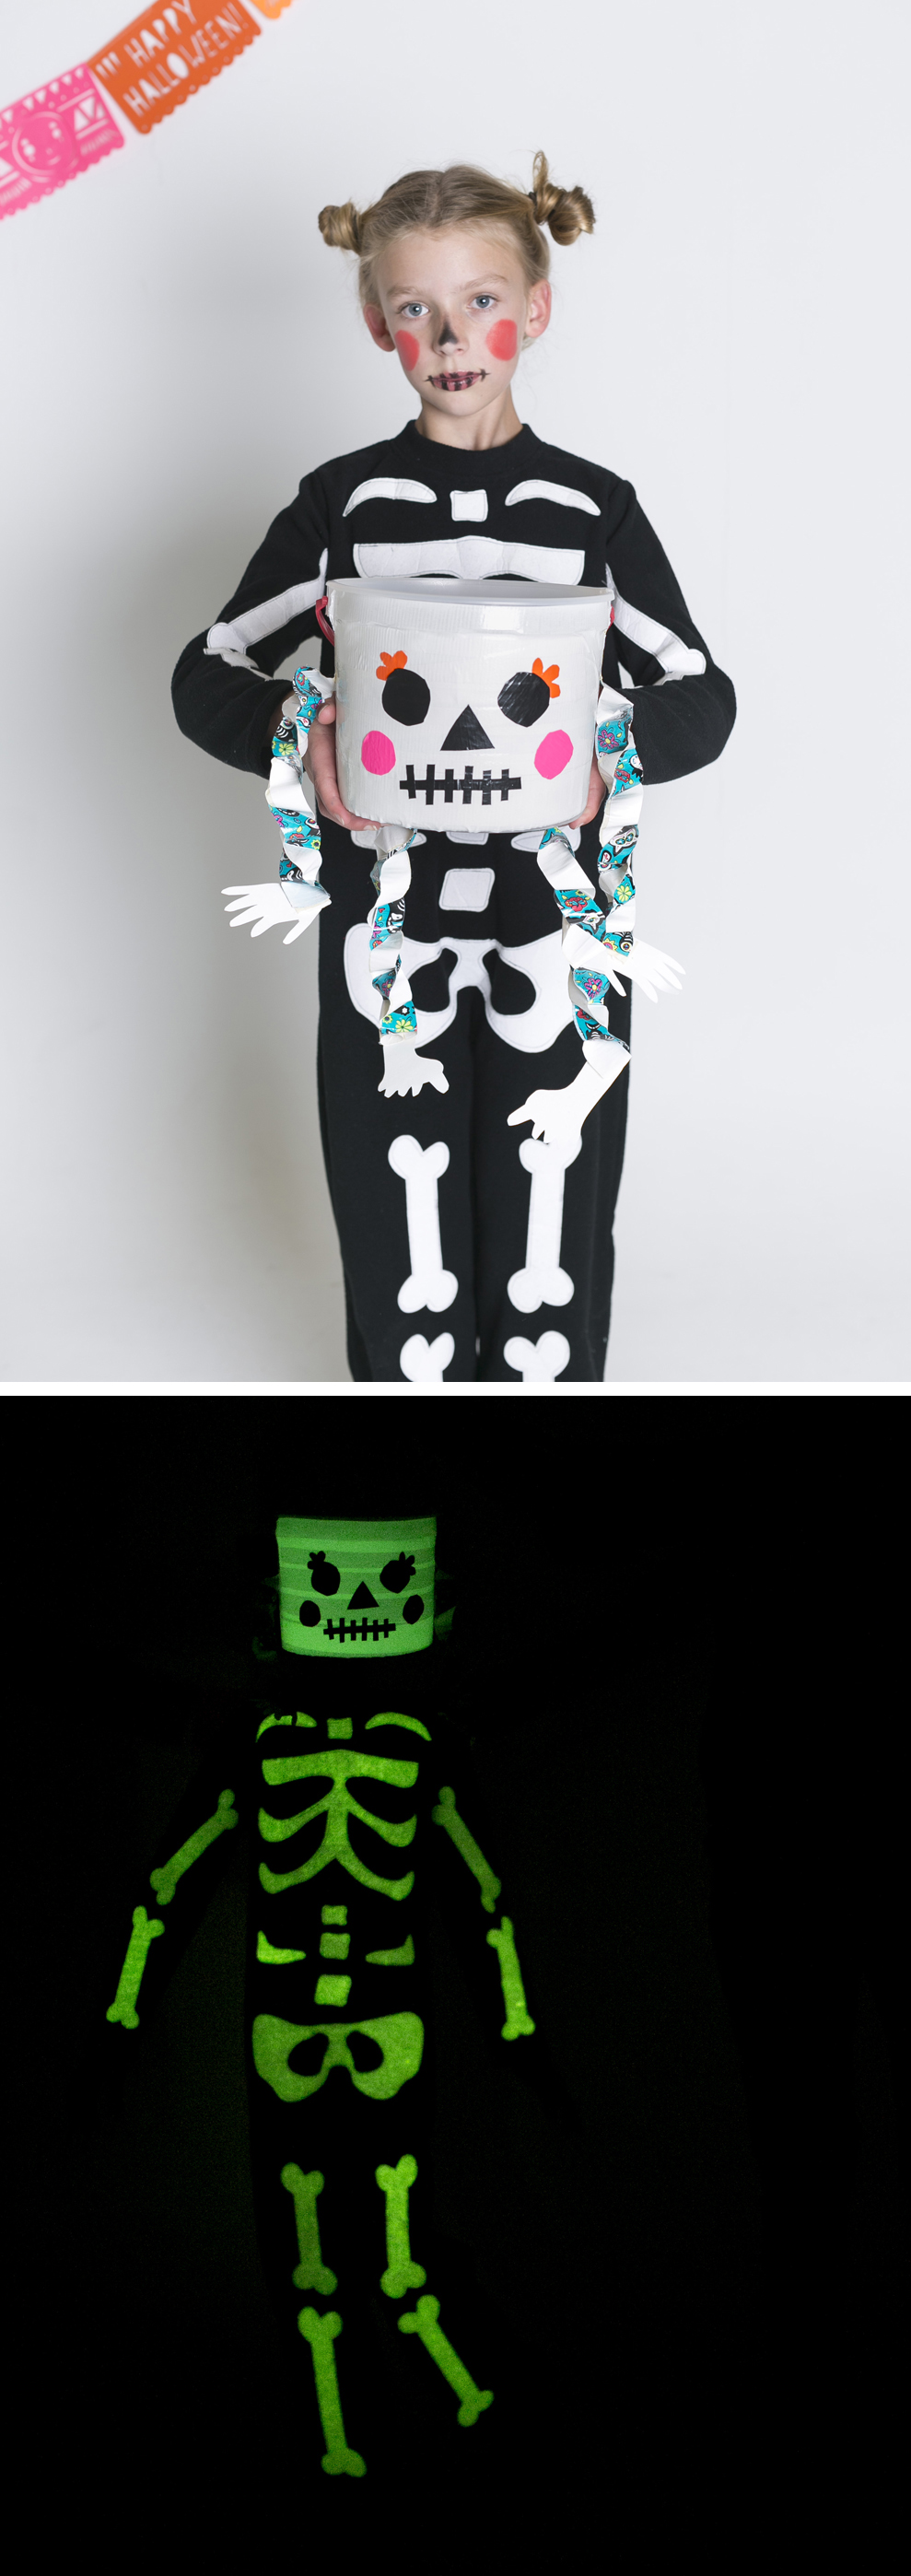 Glow-in-the-Dark Duct Tape Skeleton Treat Bucket | mer mag